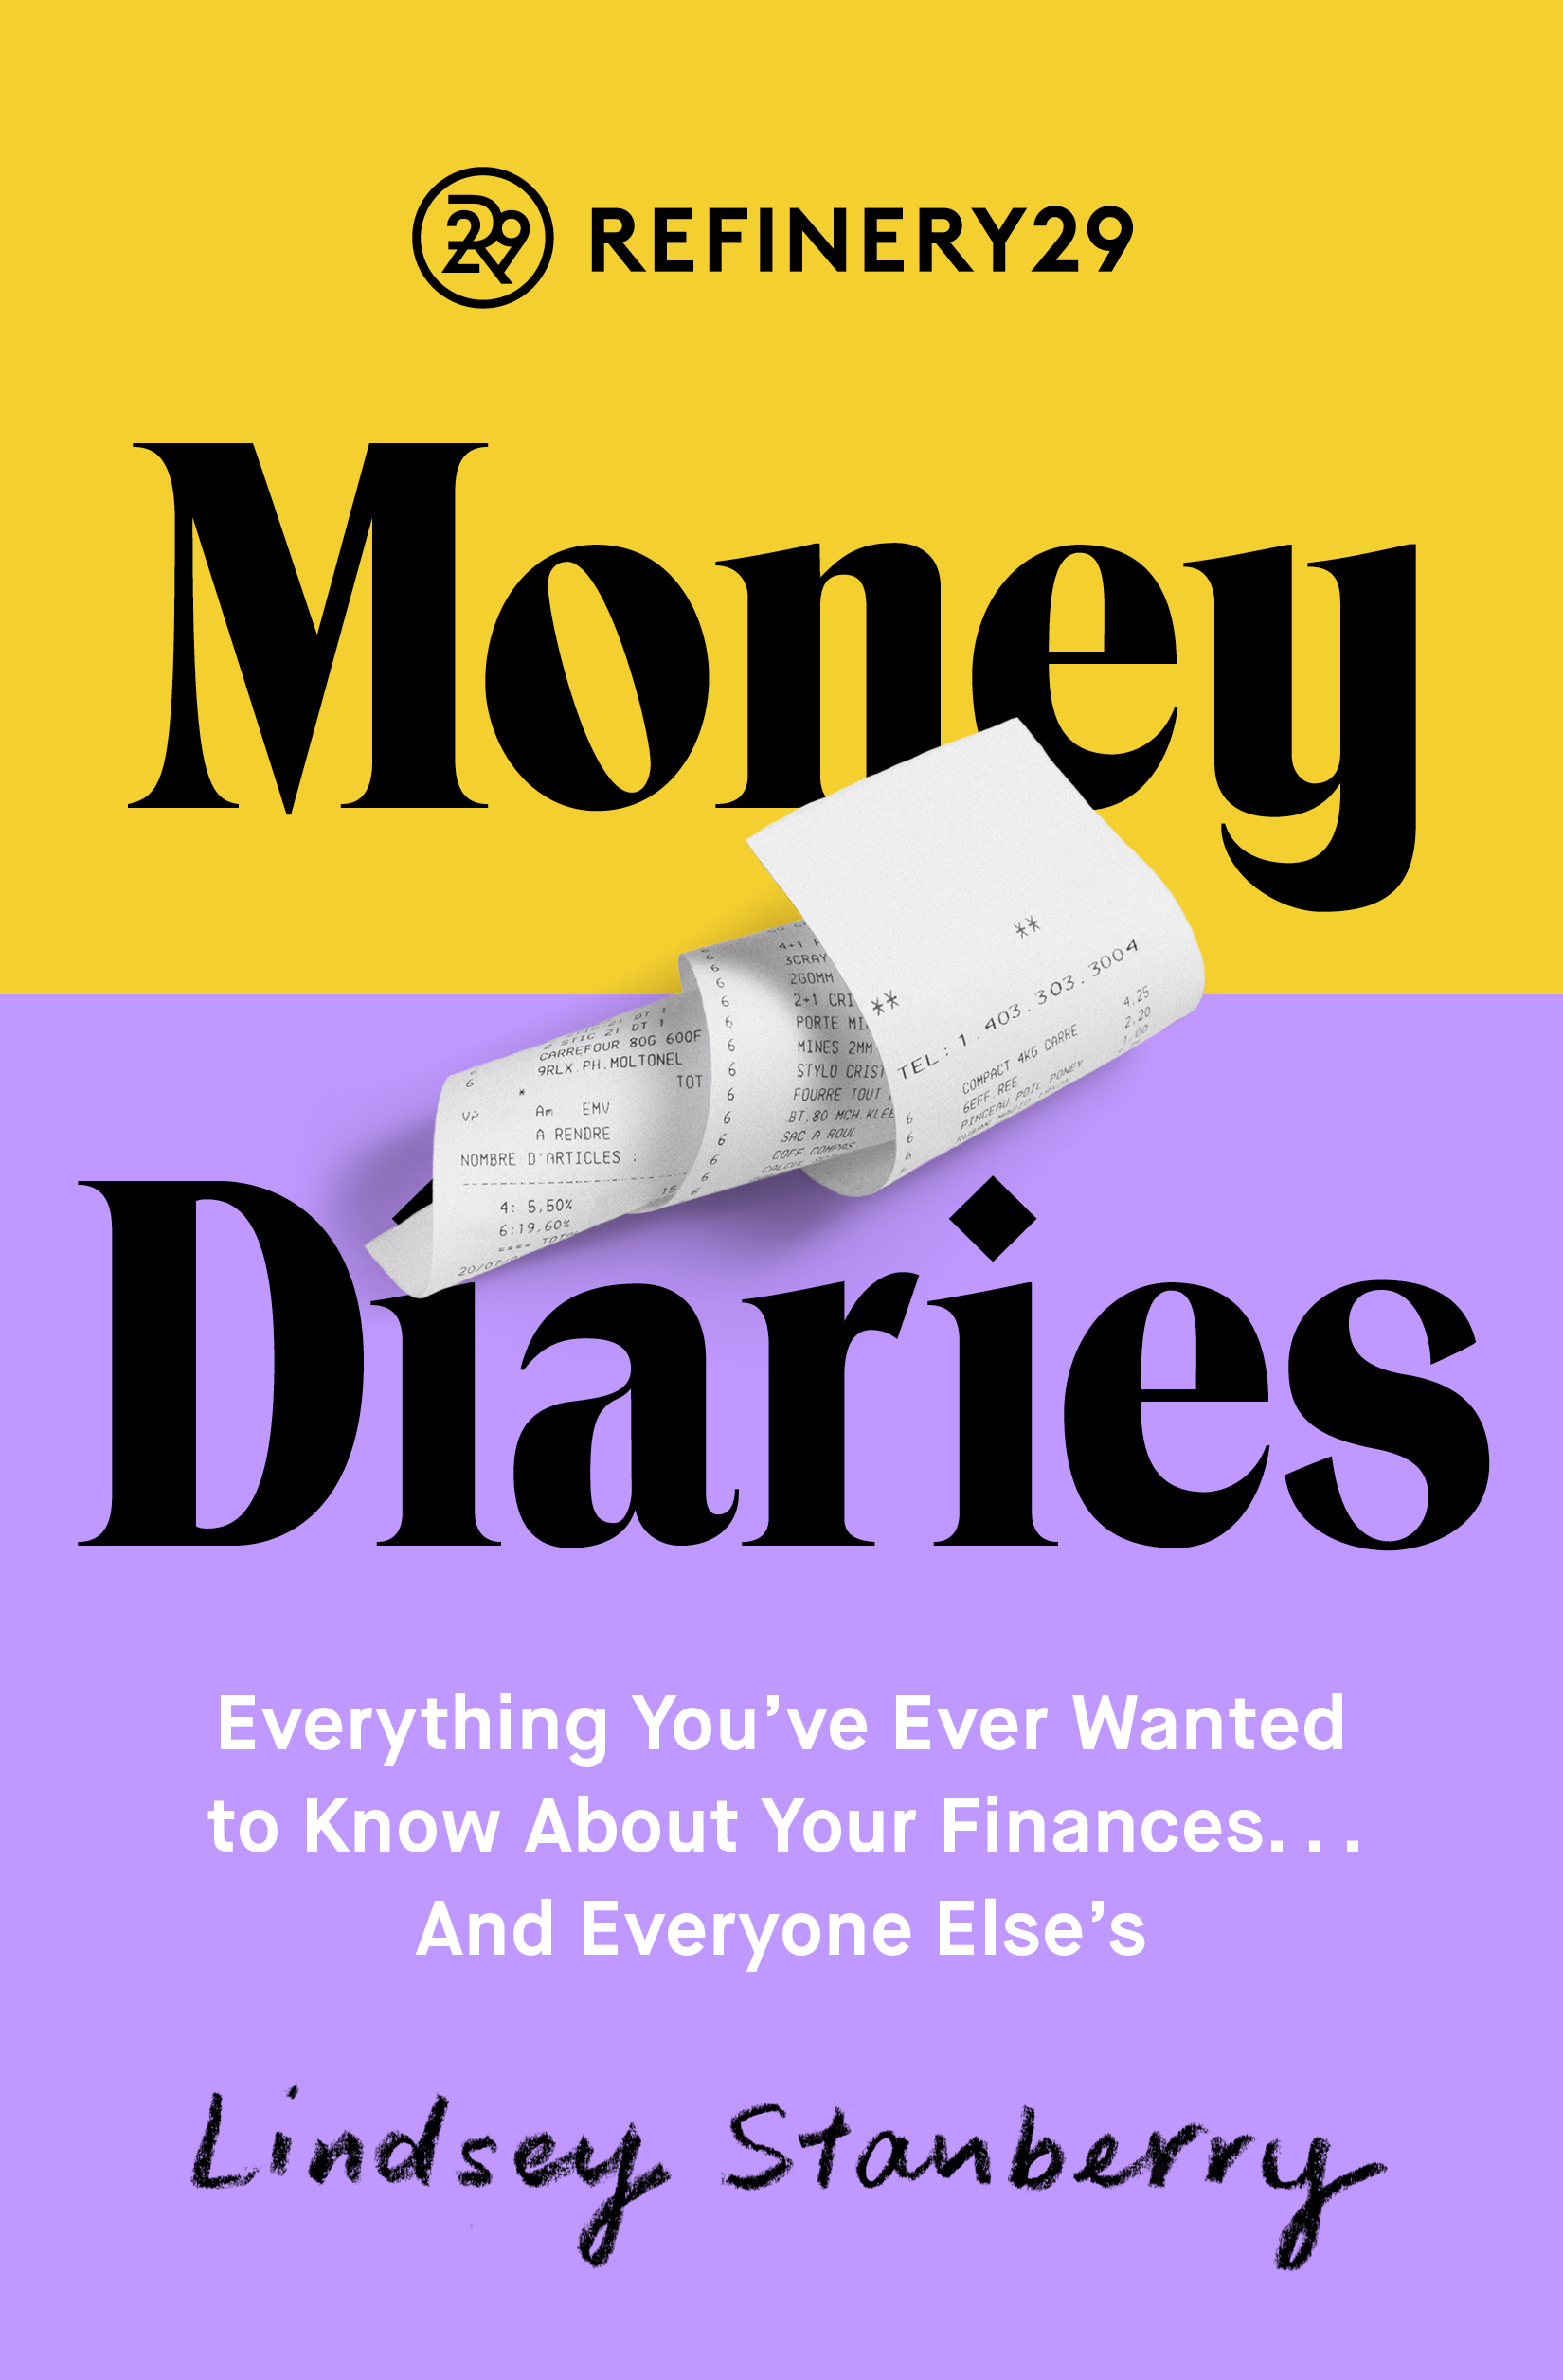 """Refinery29 Money Diaries: Everything You've Ever Wanted To Know About Your Finances... And Everyone Else's"" by Lindsey Stanberry (Image: Courtesy Touchstone){ }"